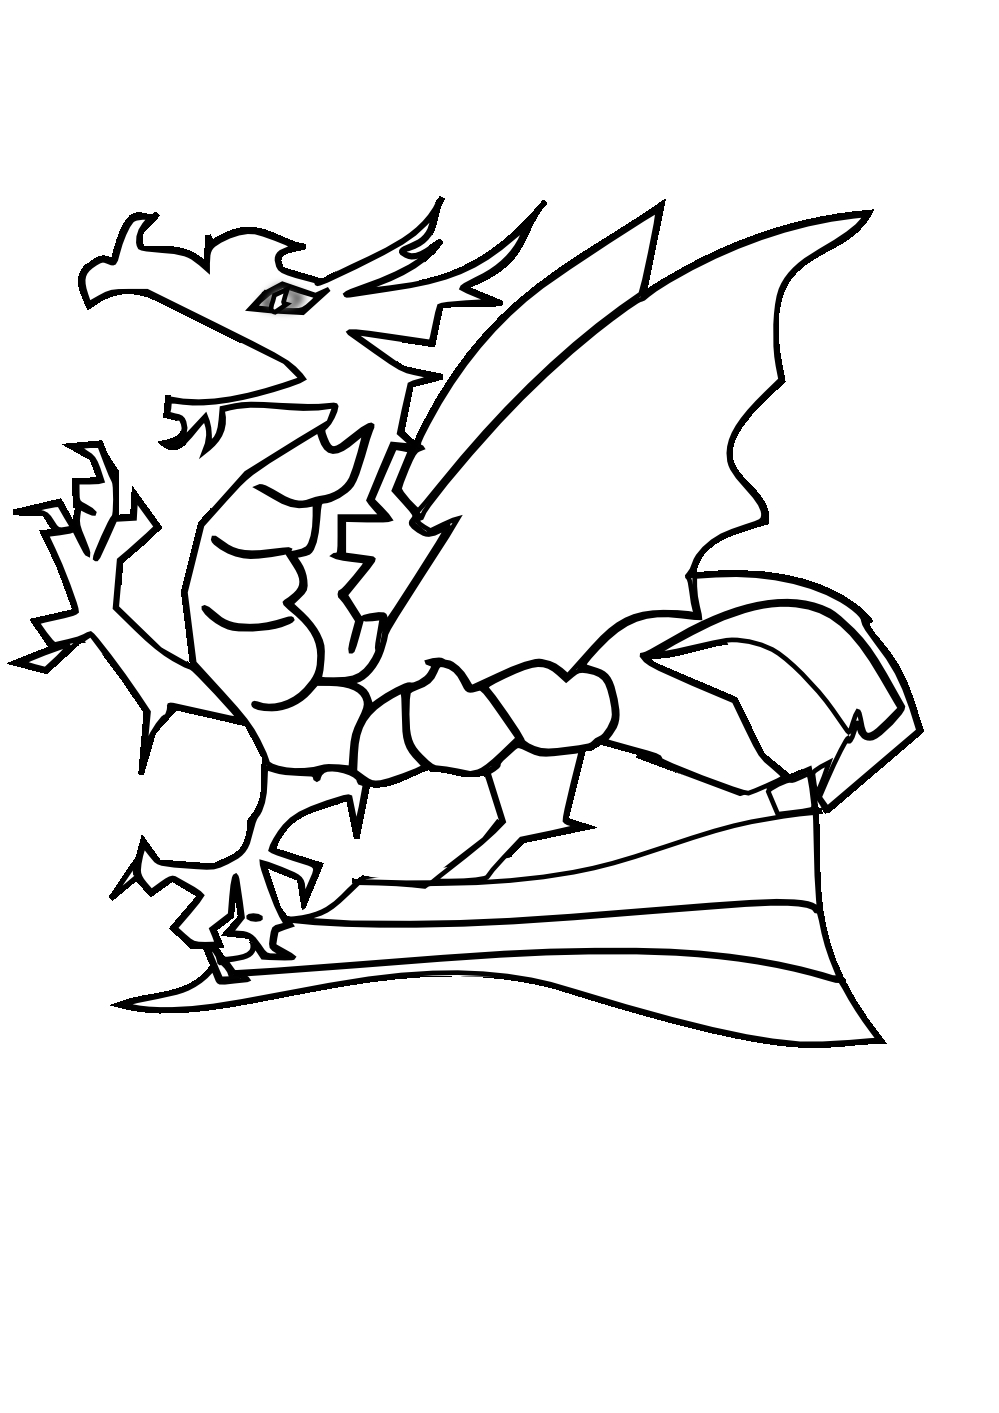 baby dragon coloring pages - baby dragon images